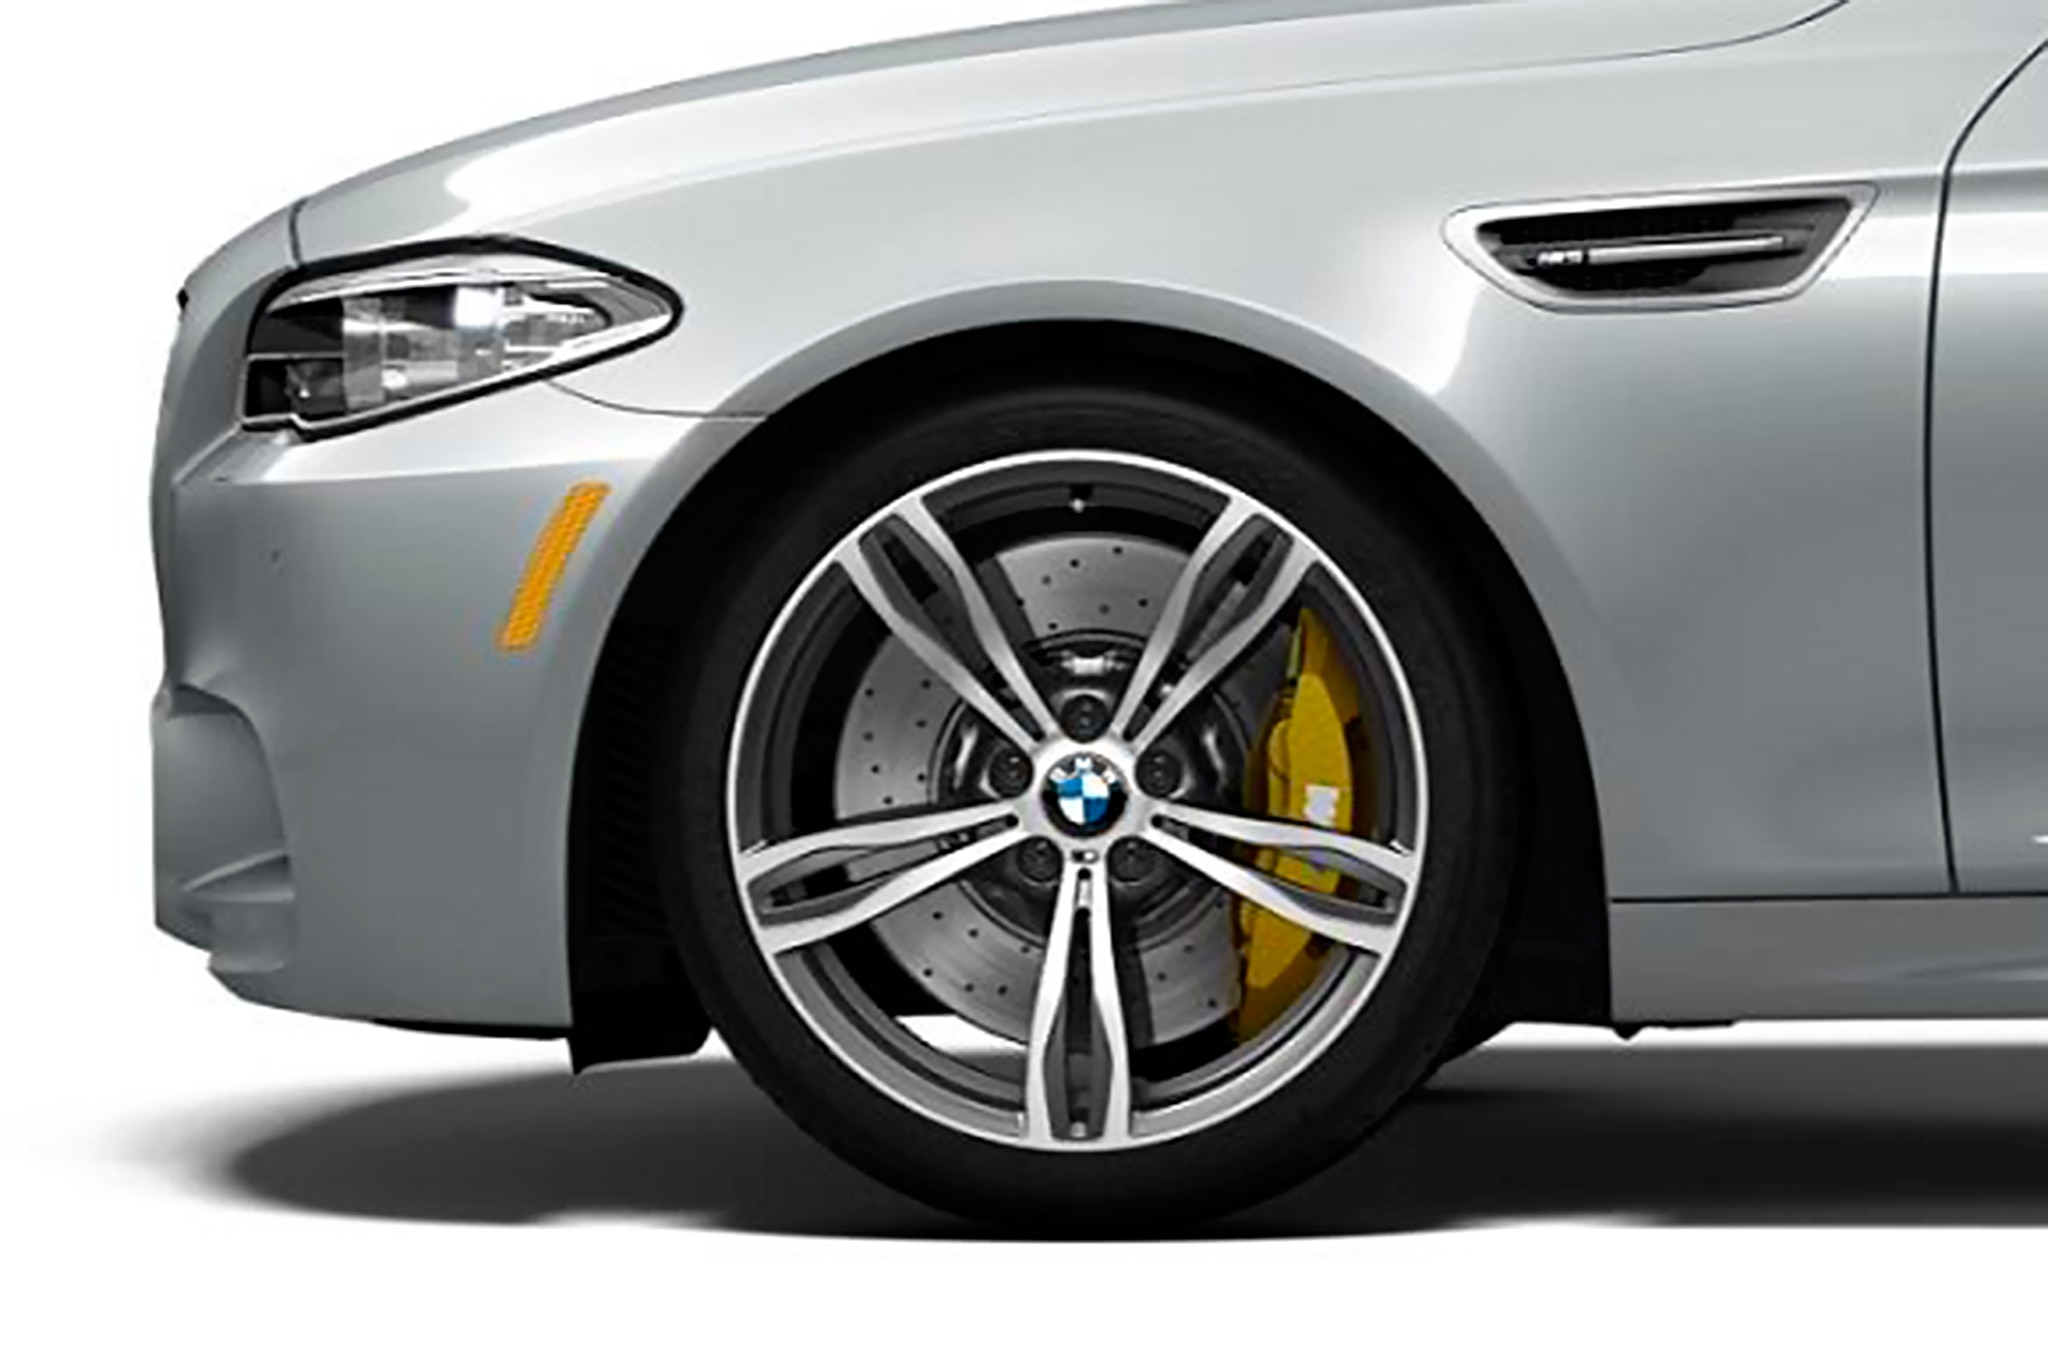 2016 BMW M5 Pure Metal Silver Limited Edition wheels